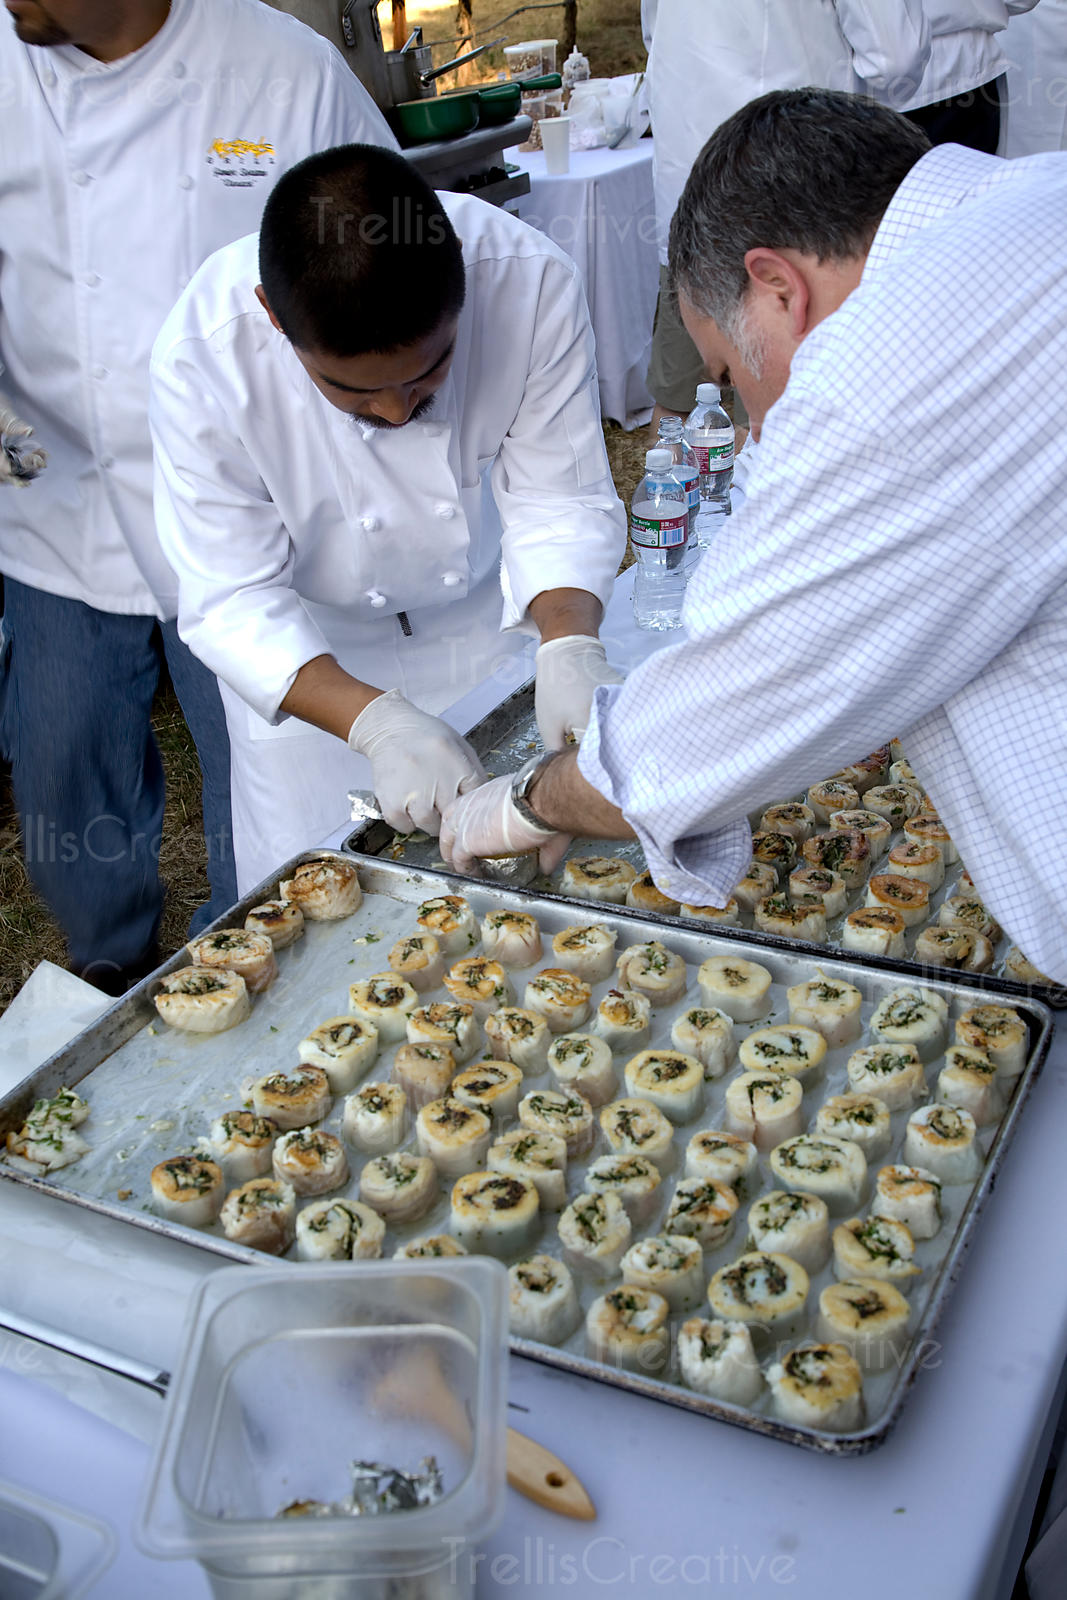 Two chefs prepare a tray of hors d'oeuvres